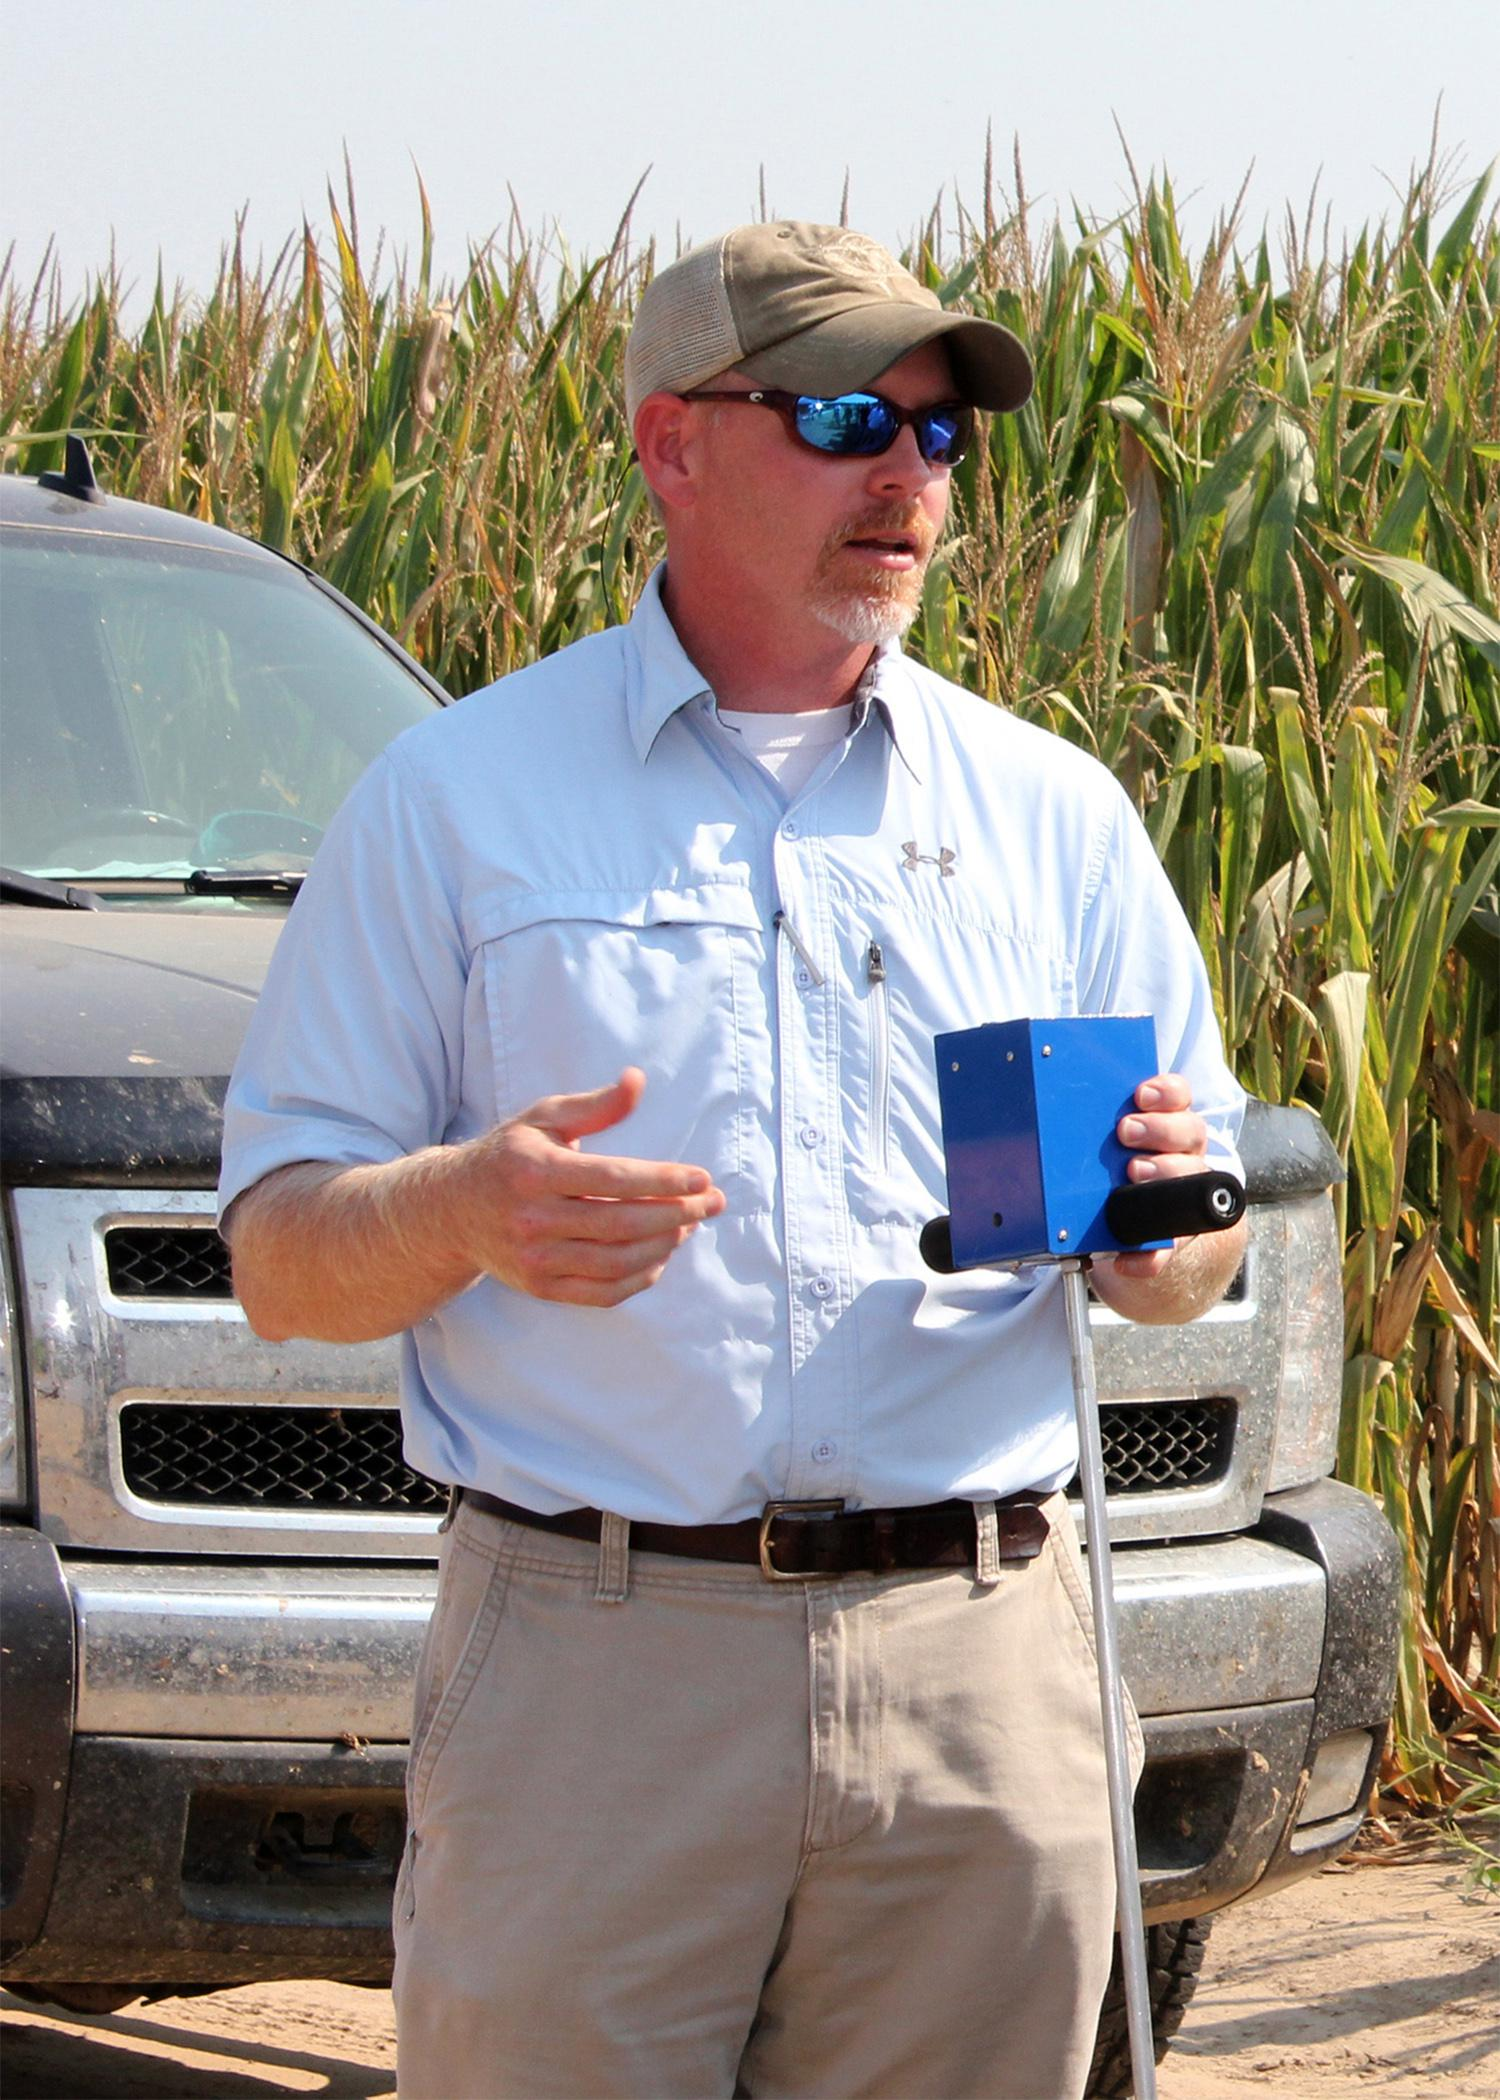 Jason Krutz, an irrigation specialist with Mississippi State University, teaches producers how to use portable soil moisture meters to conserve water while still providing the proper amount of water for plant growth. (File photo by MSU Ag Communications/Bonnie Coblentz)